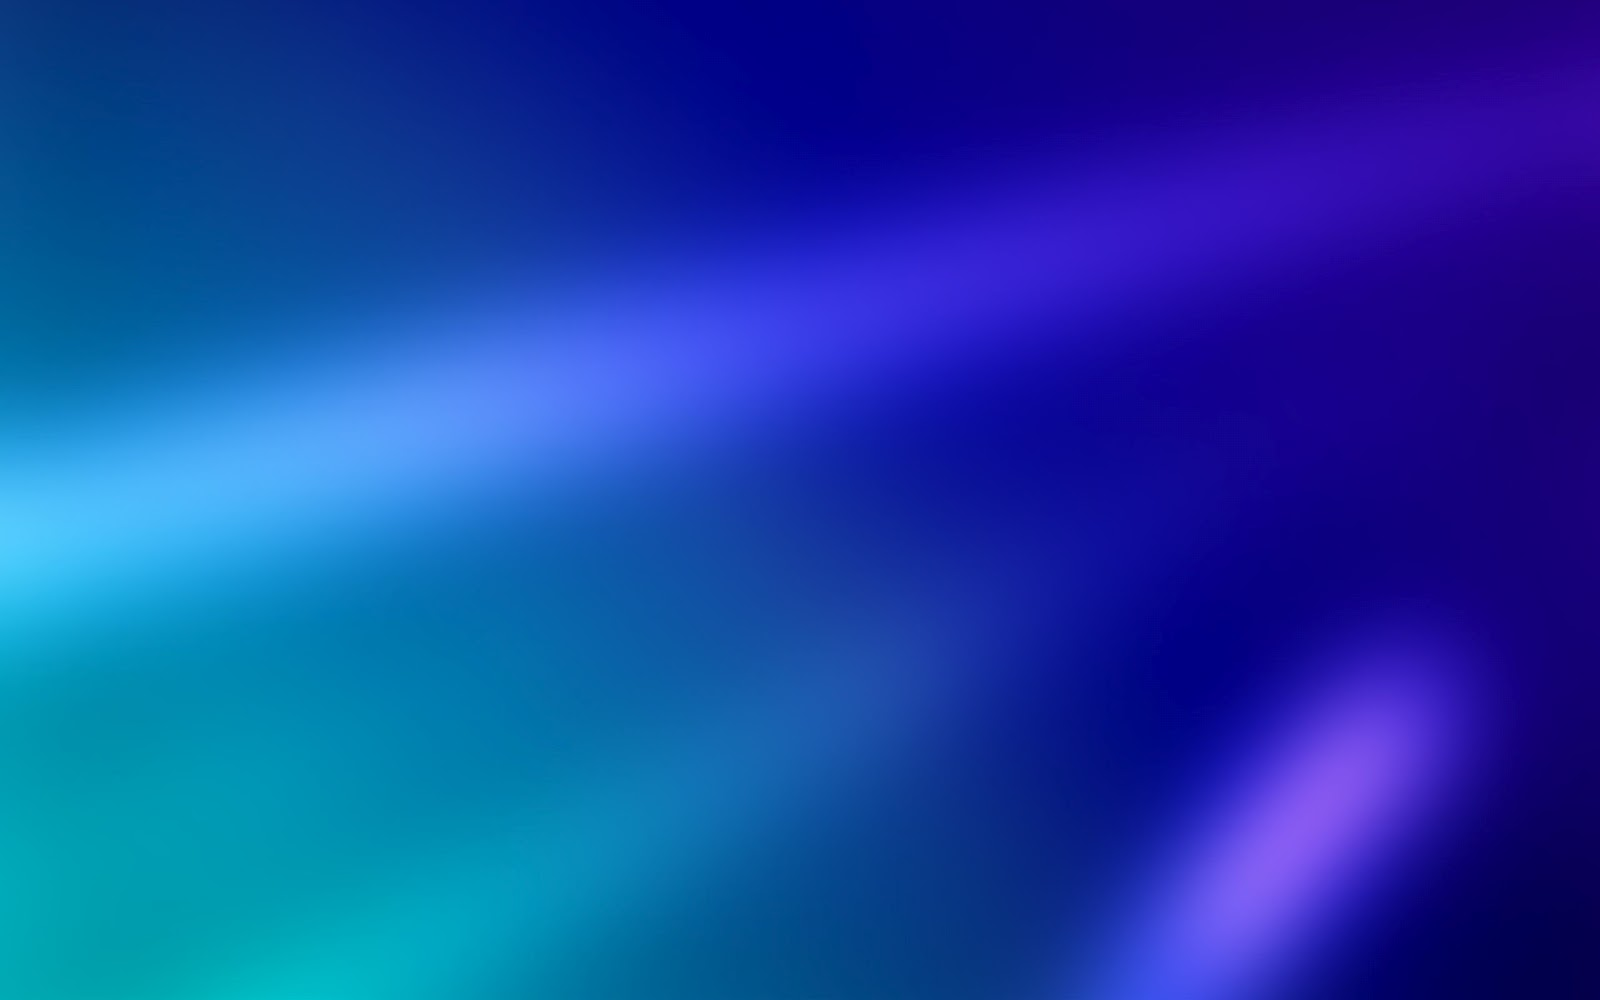 FREE-PHOTOSHOP BACKGROUNDS-HIGH-RESOLUTION WALLPAPERS ...